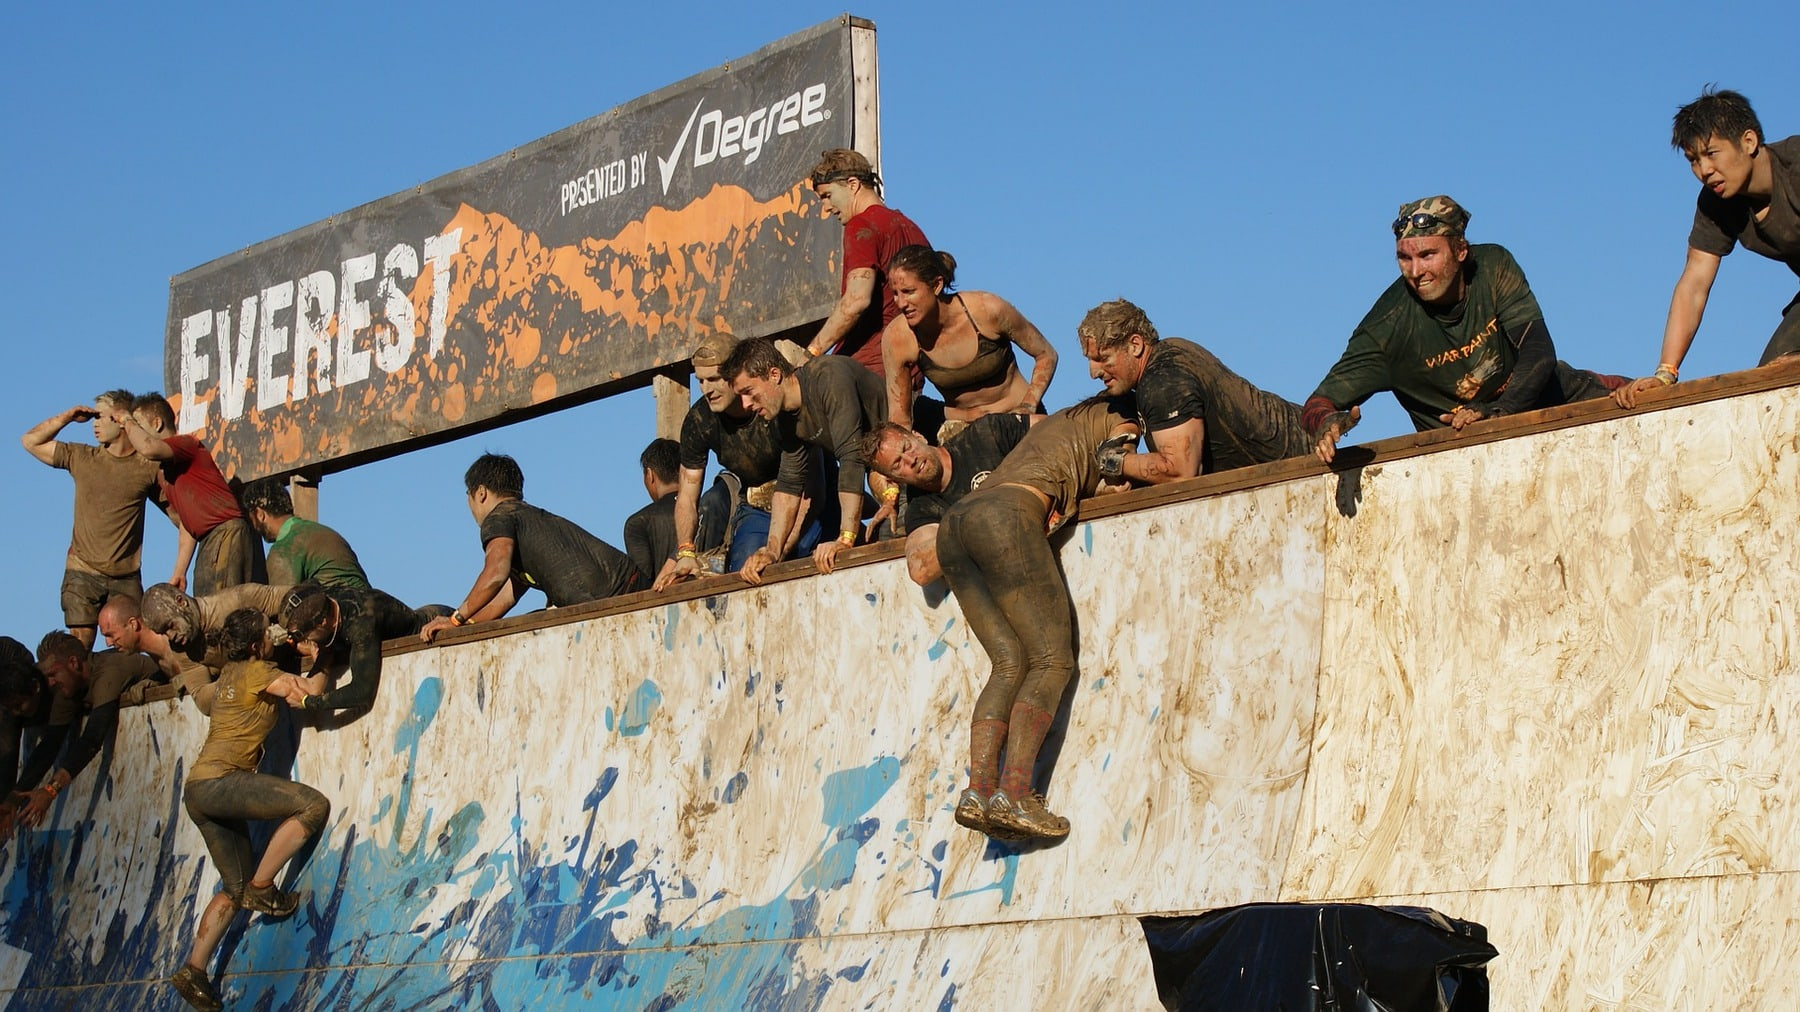 entrants at tough mudder help each other climb a wall